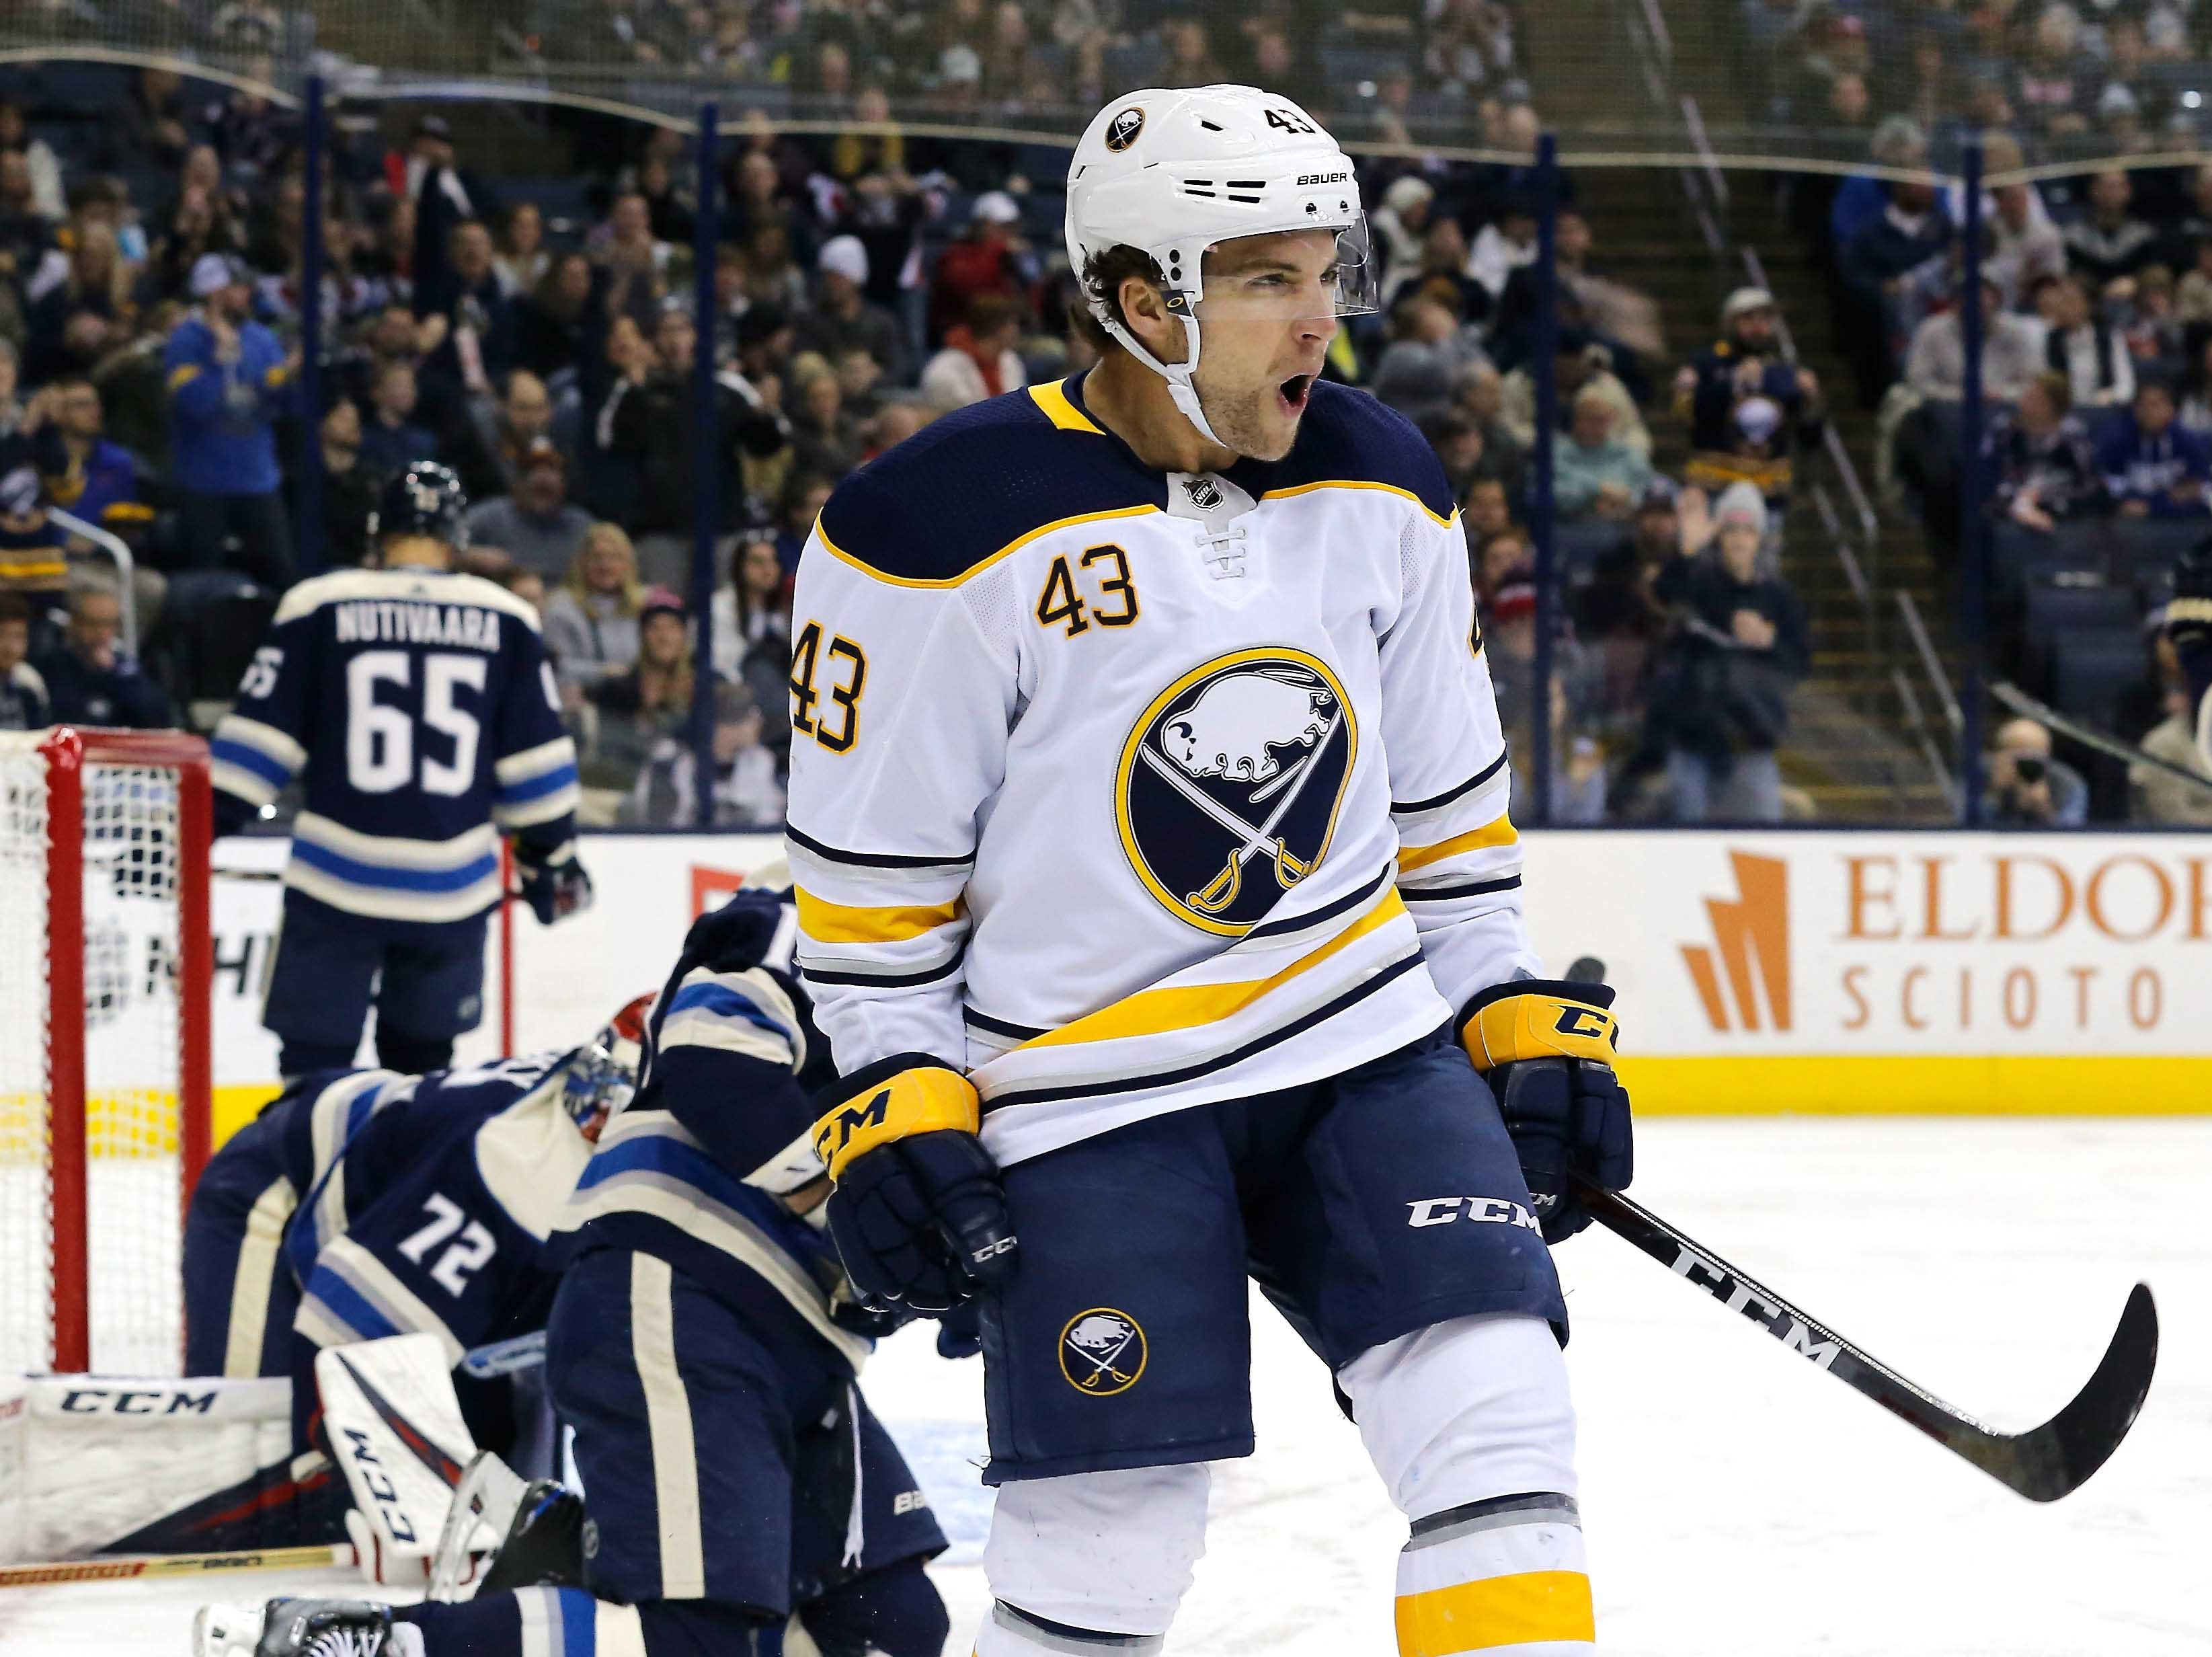 Jan. 29: Buffalo Sabres left wing Conor Sheary celebrates his go-ahead goal  in the third period against the Columbus Blue Jackets. It ended up being the game-winner.